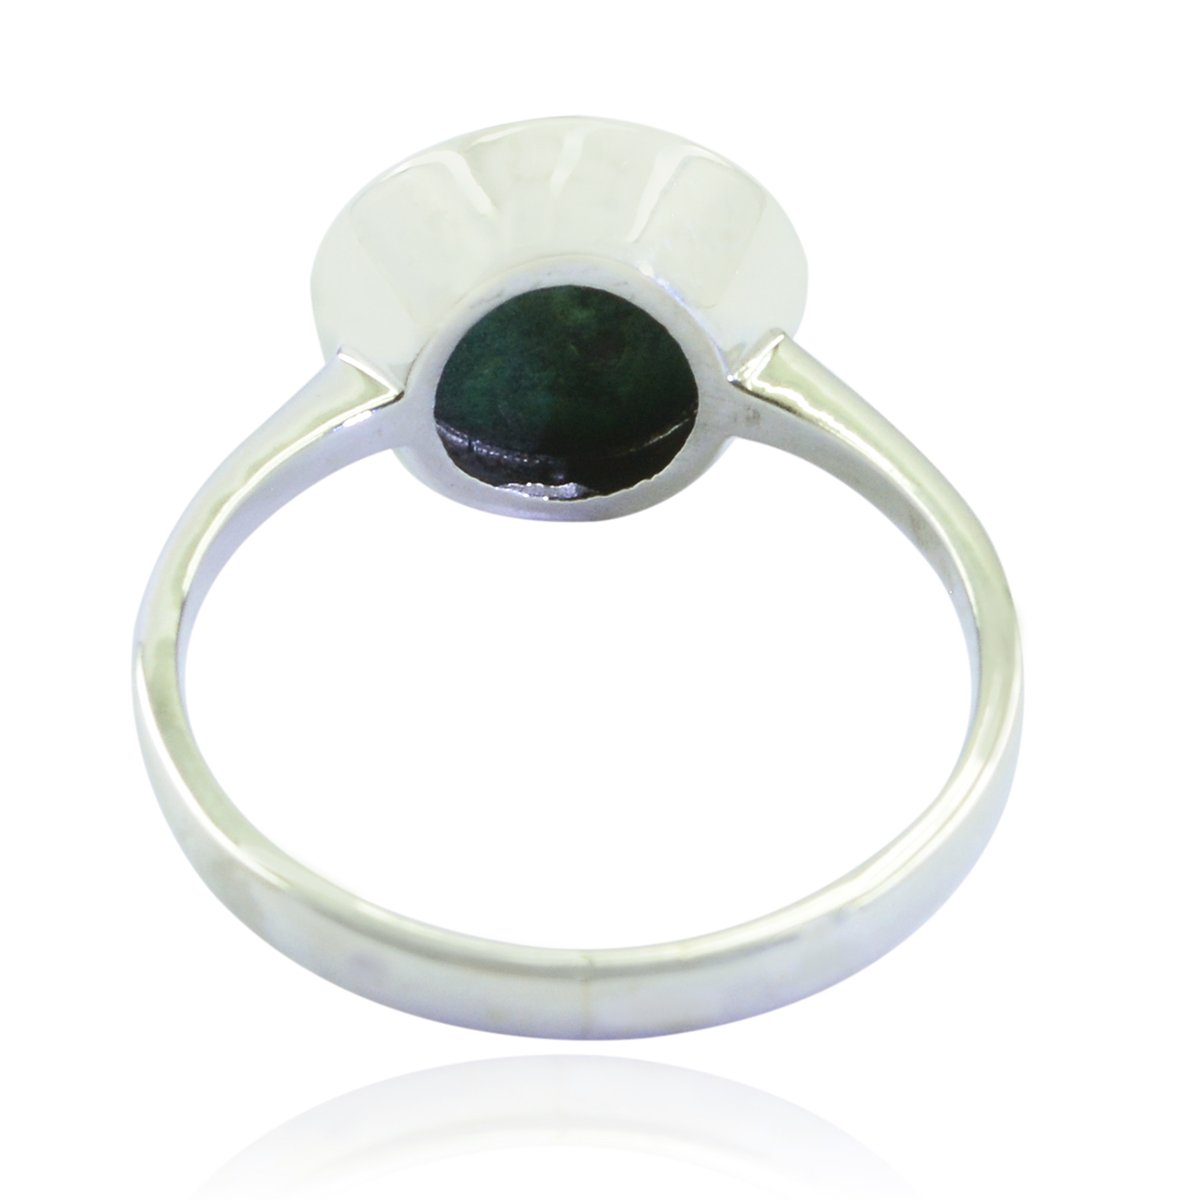 Ornaments /& Accents Good Selling Shops Gift for mom Birthday wrap Ring Lovely Gemstones Round cabochon Malachite Ring Solid Silver Green Malachite Lovely Gemstones Ring